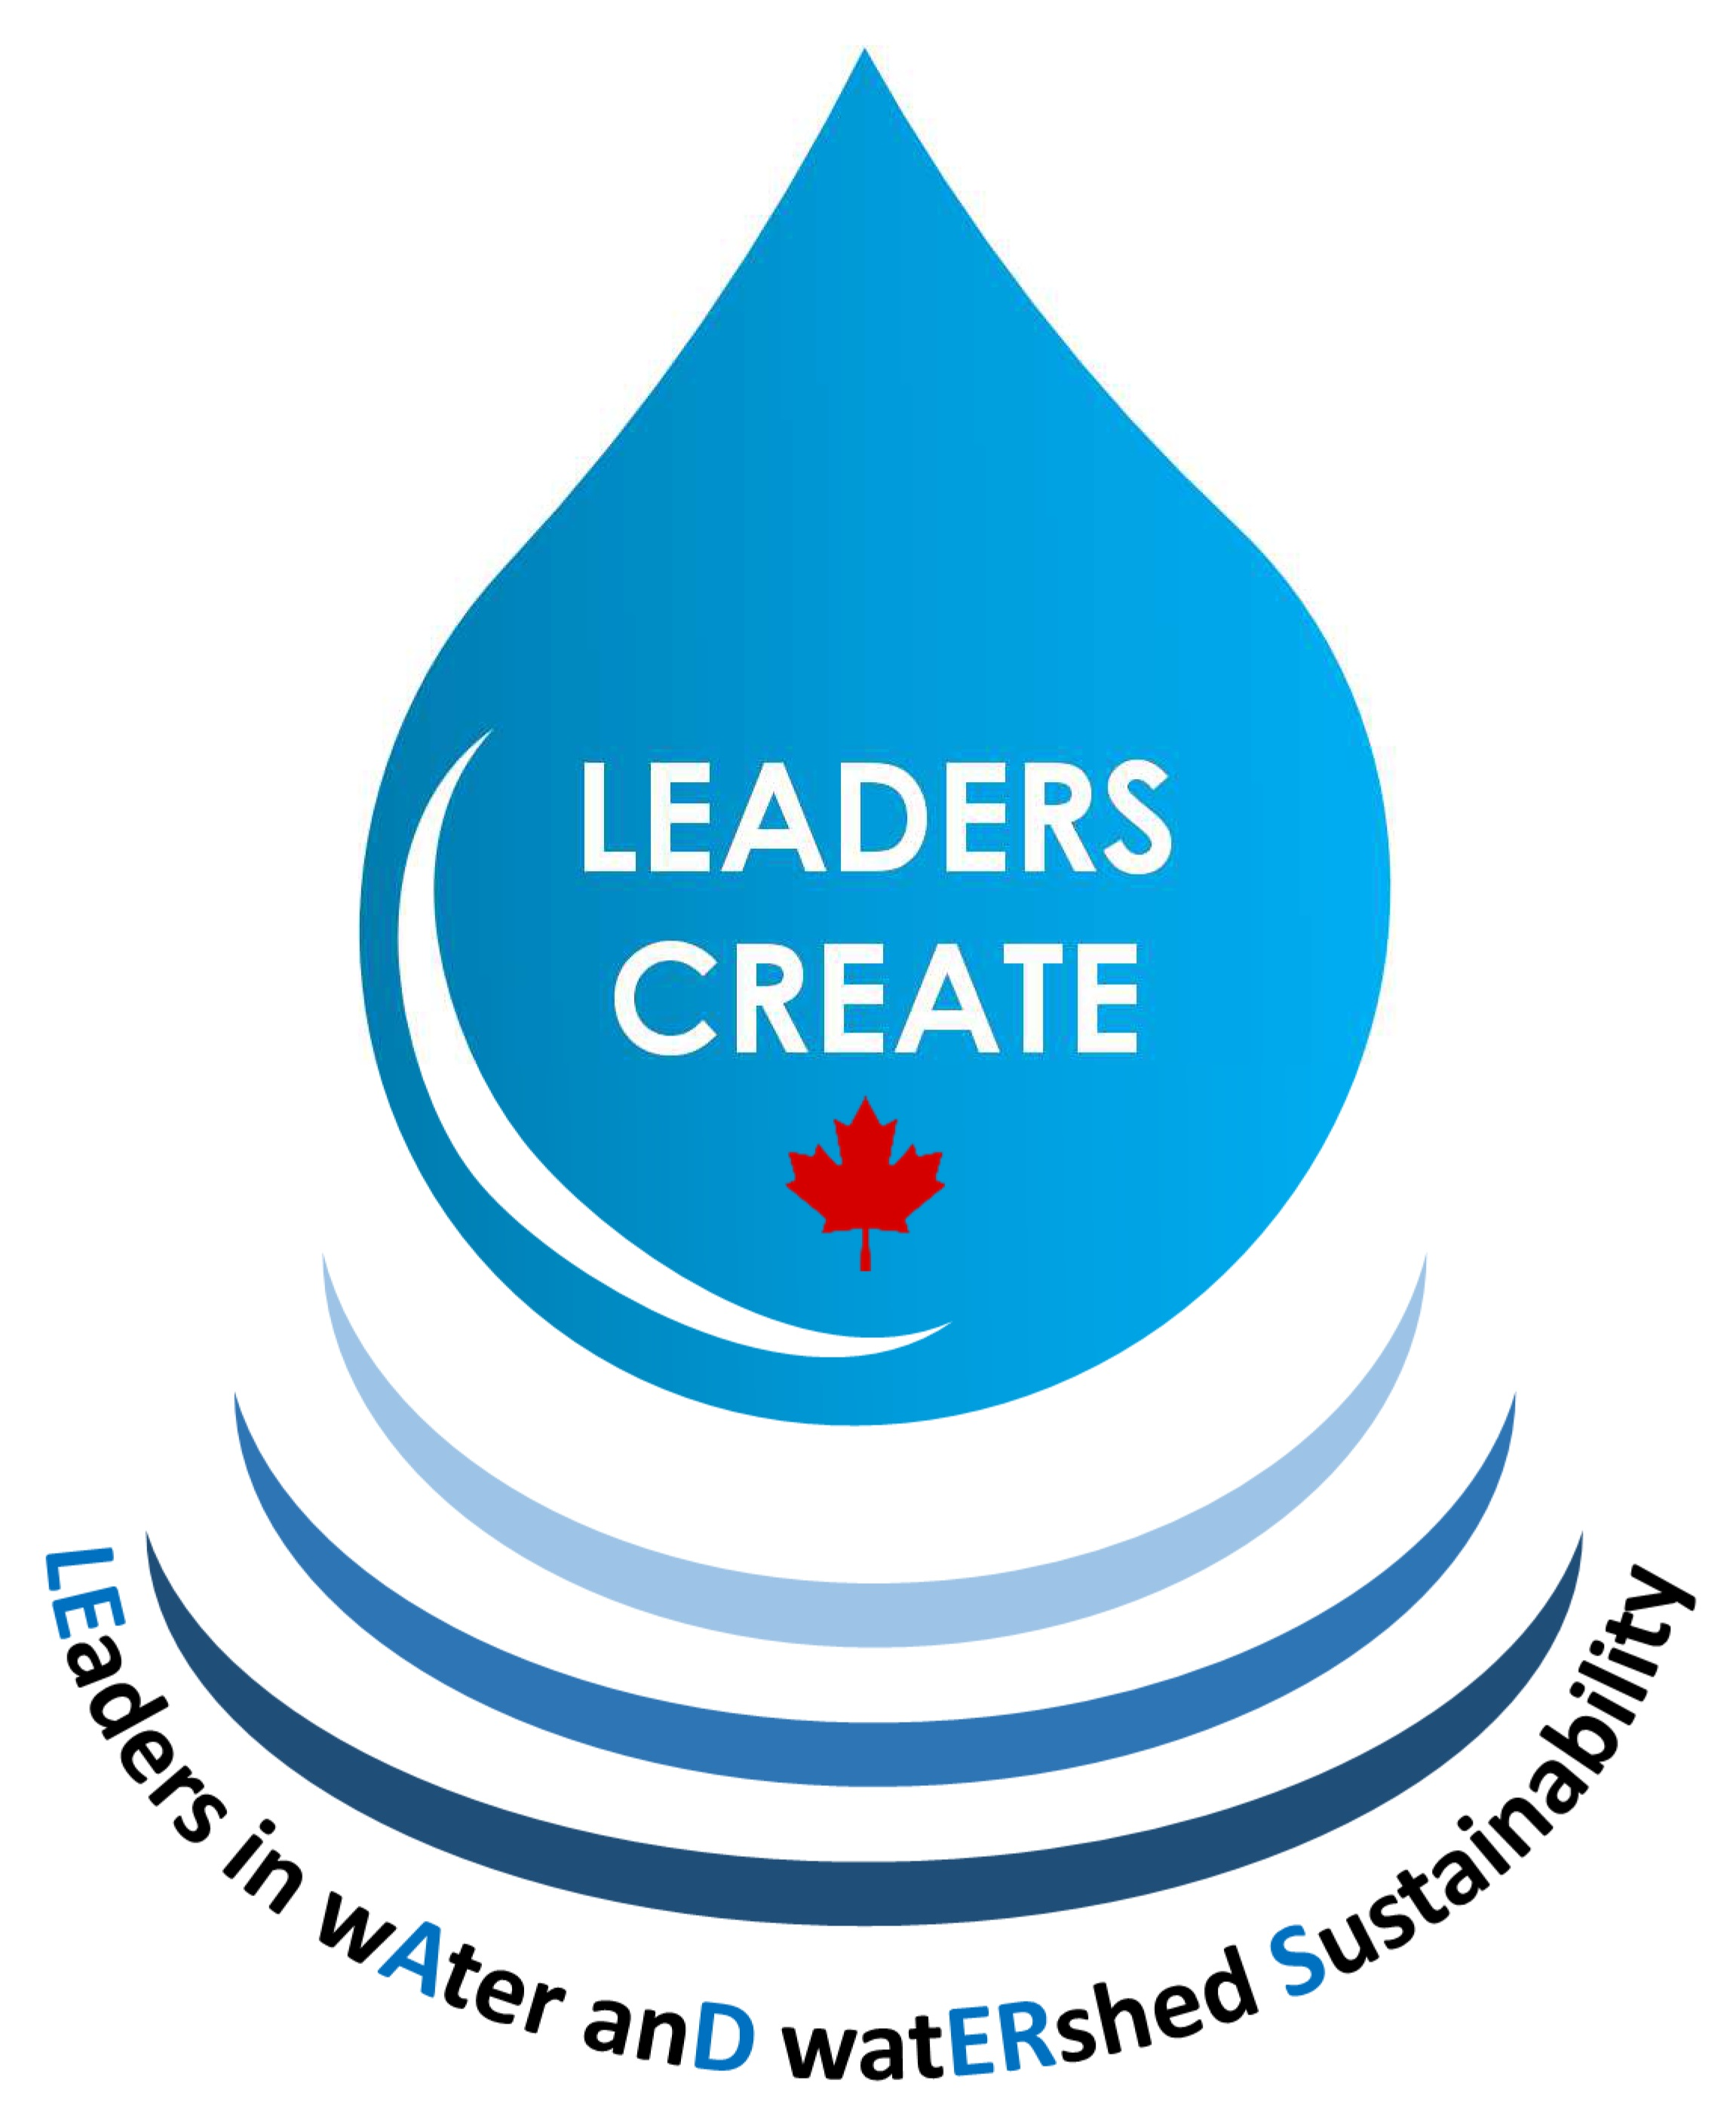 LEADERS CREATE